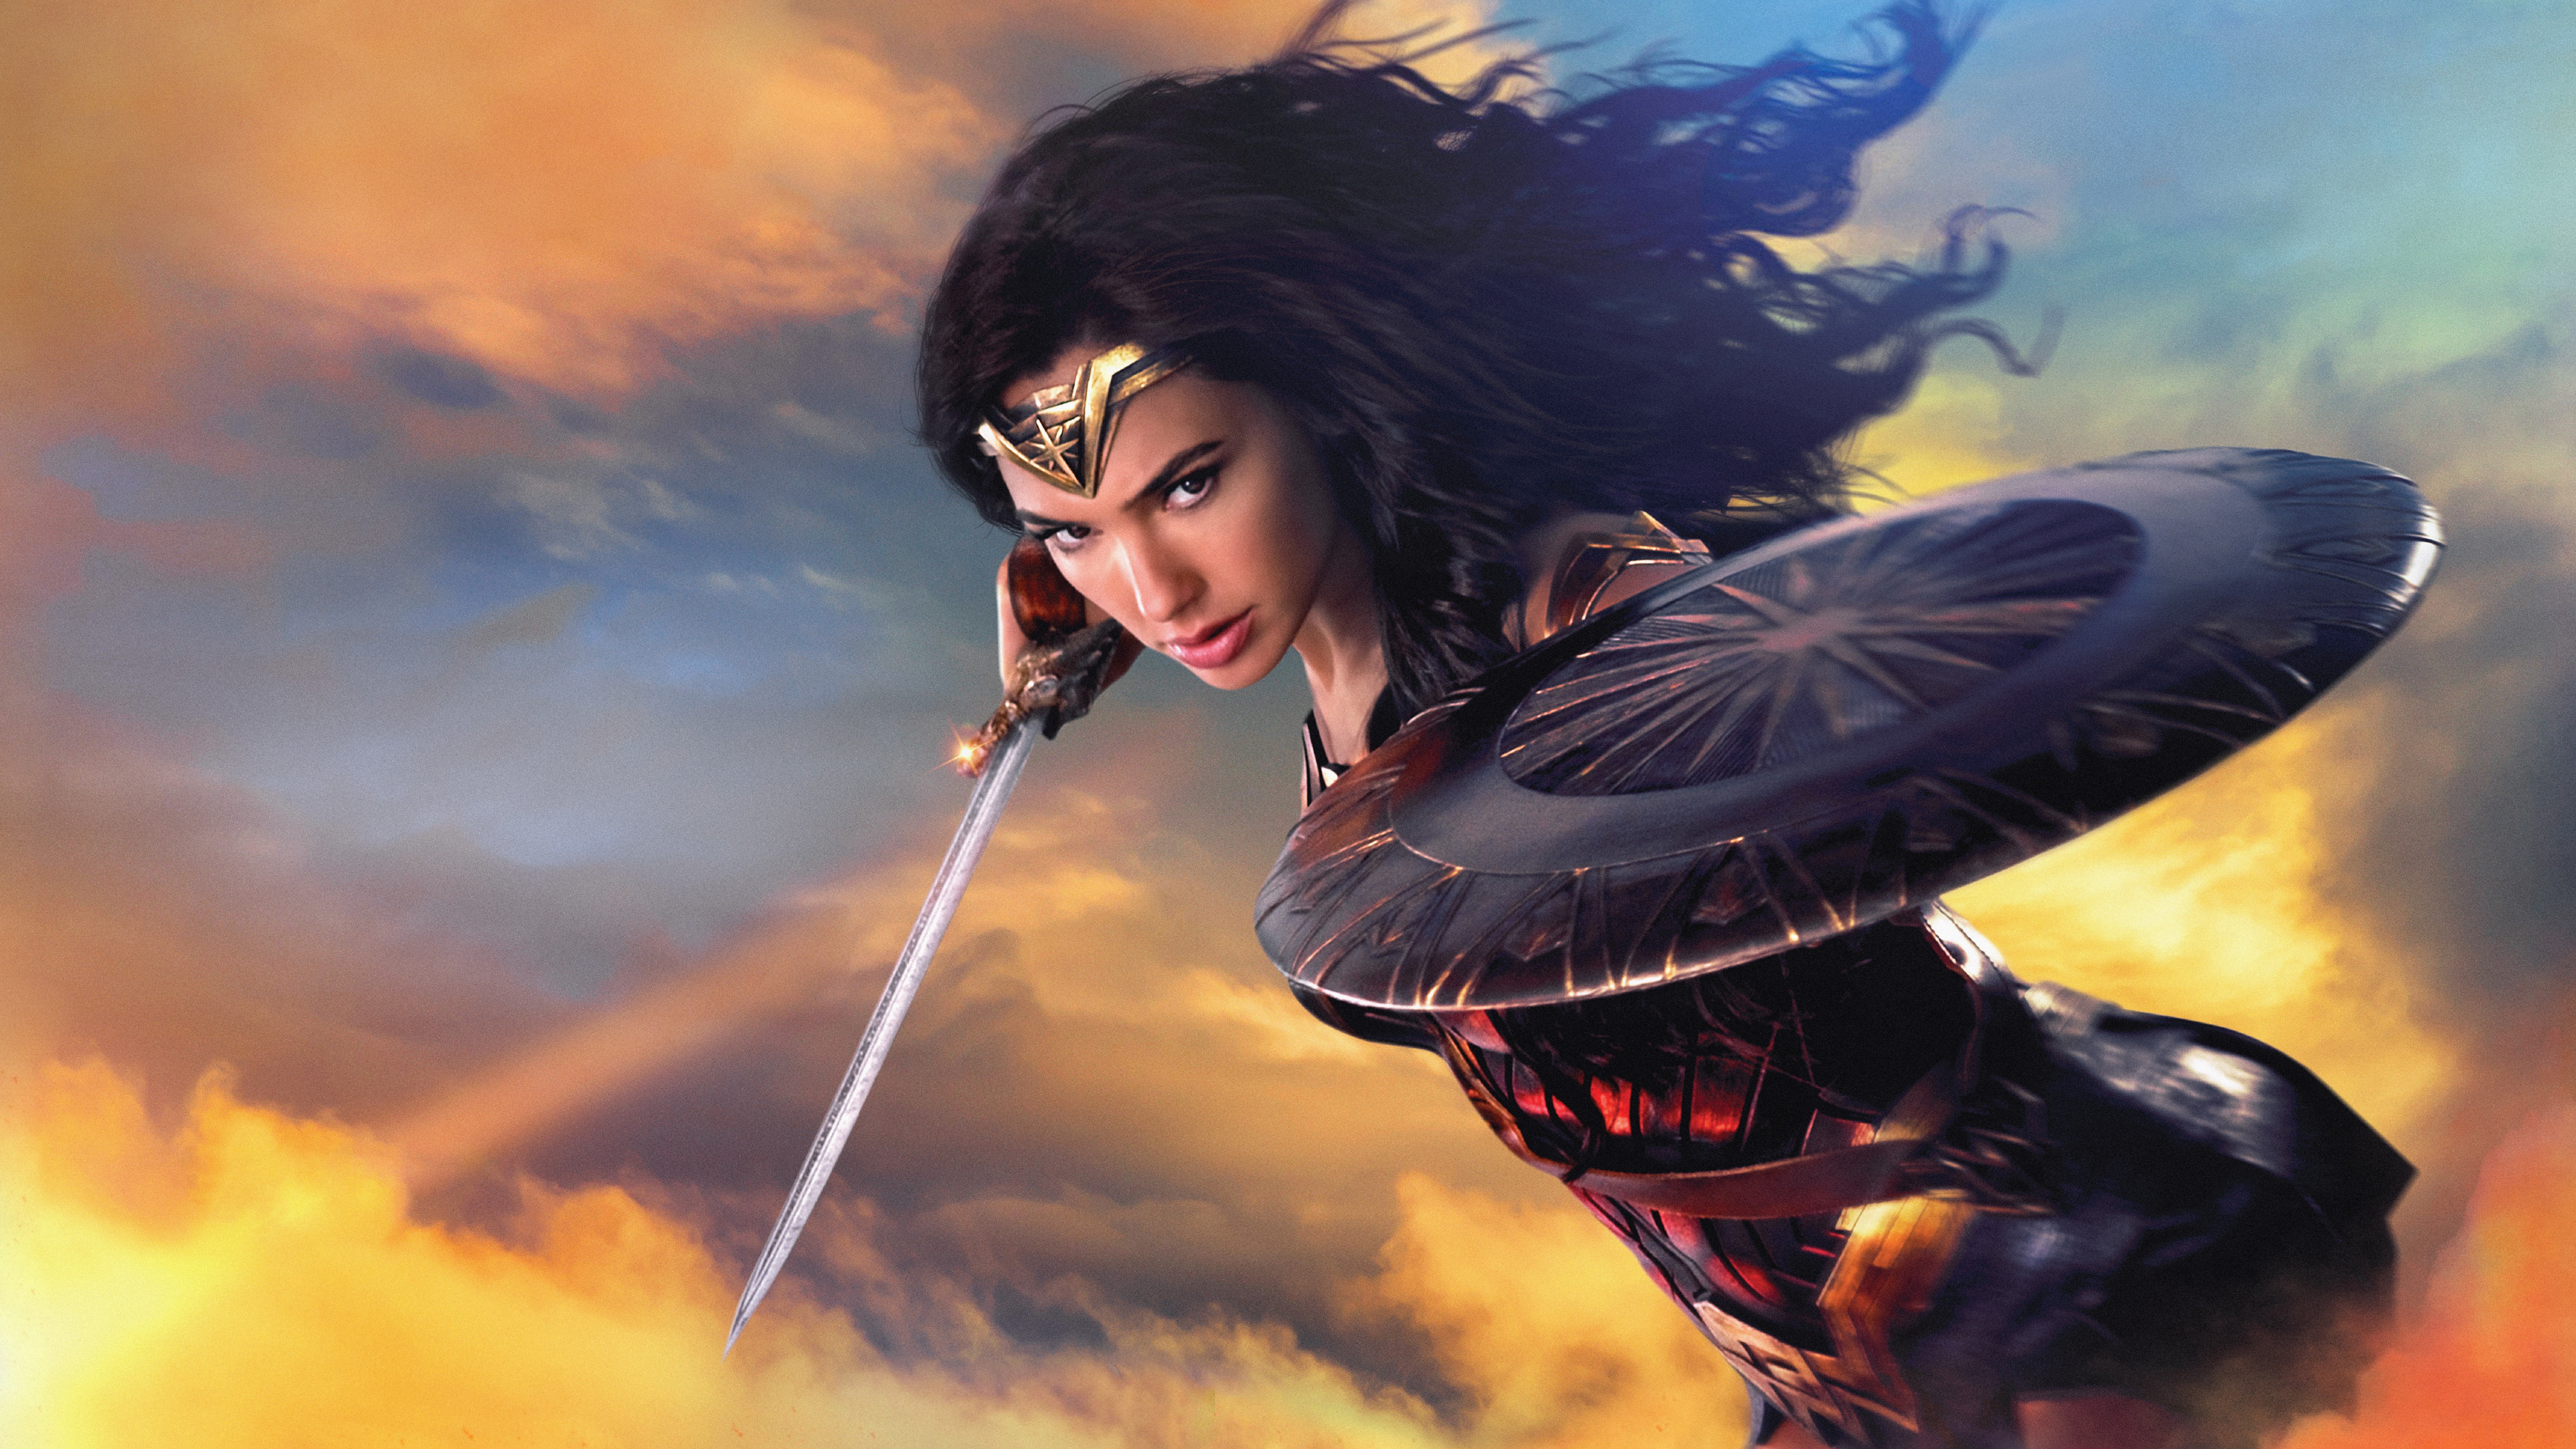 Wonder Wallpapers 4k For Your Phone And Desktop Screen